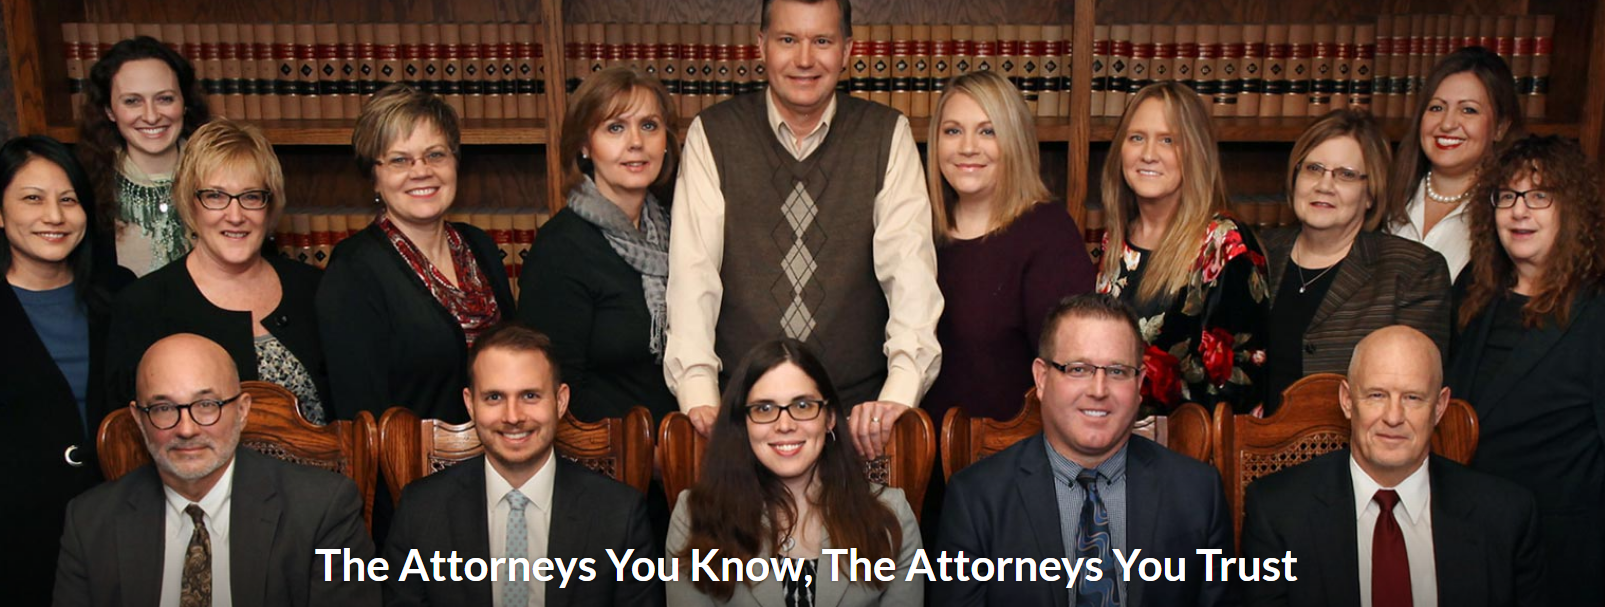 Barber, Kaper, Stamm, McWatters, Whitlock & Maloney, LLP reviews | Legal Services at 124 N Fulton St - Wauseon OH